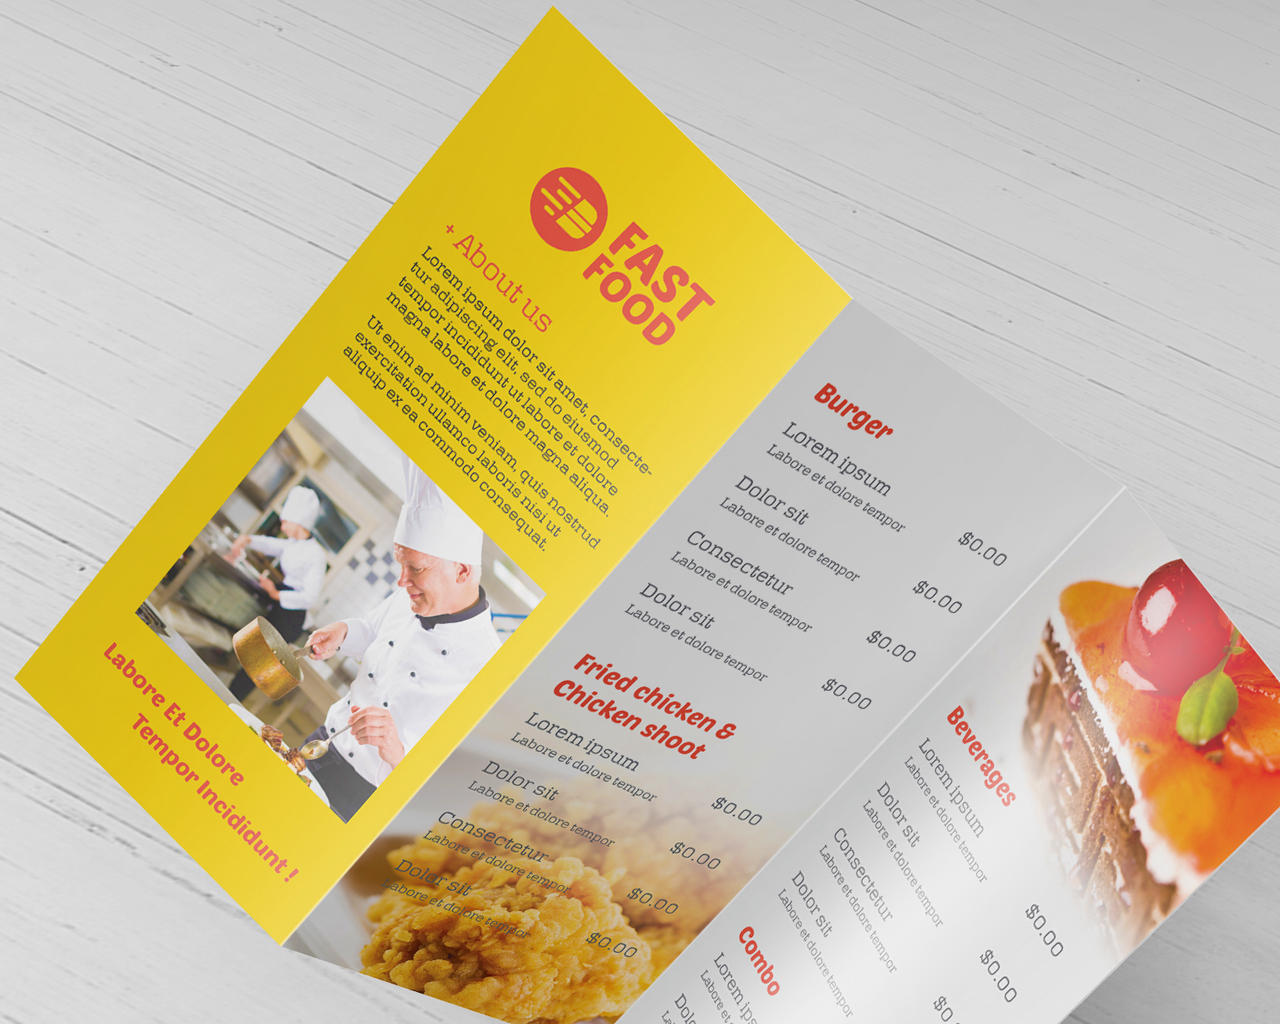 Bifold & Trifold Brochure Design by Wutip - 101945